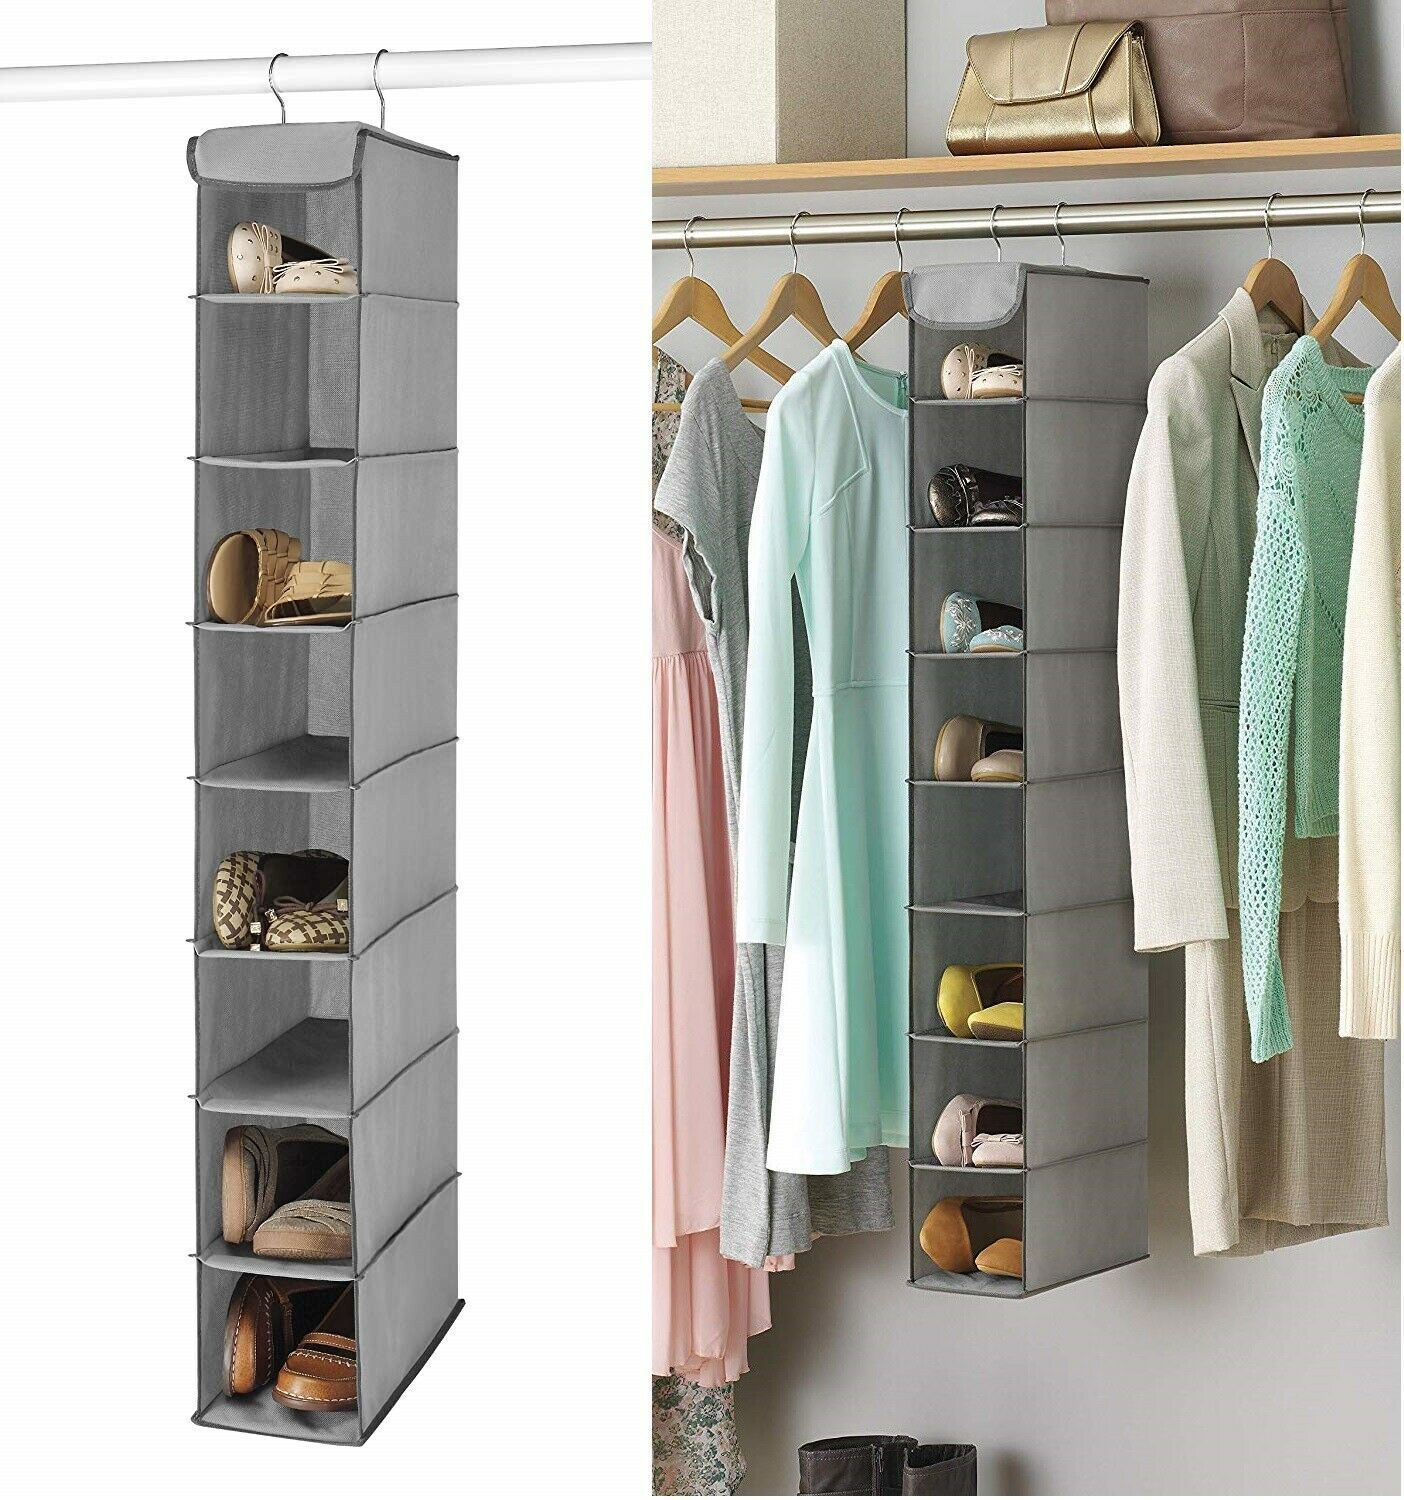 8 Section Space Saving Shoe Storage Closet Organizer Hanging Shelf Rack Gray Closet In 2020 Storage Closet Organization Hanging Shoe Storage Closet Shoe Storage